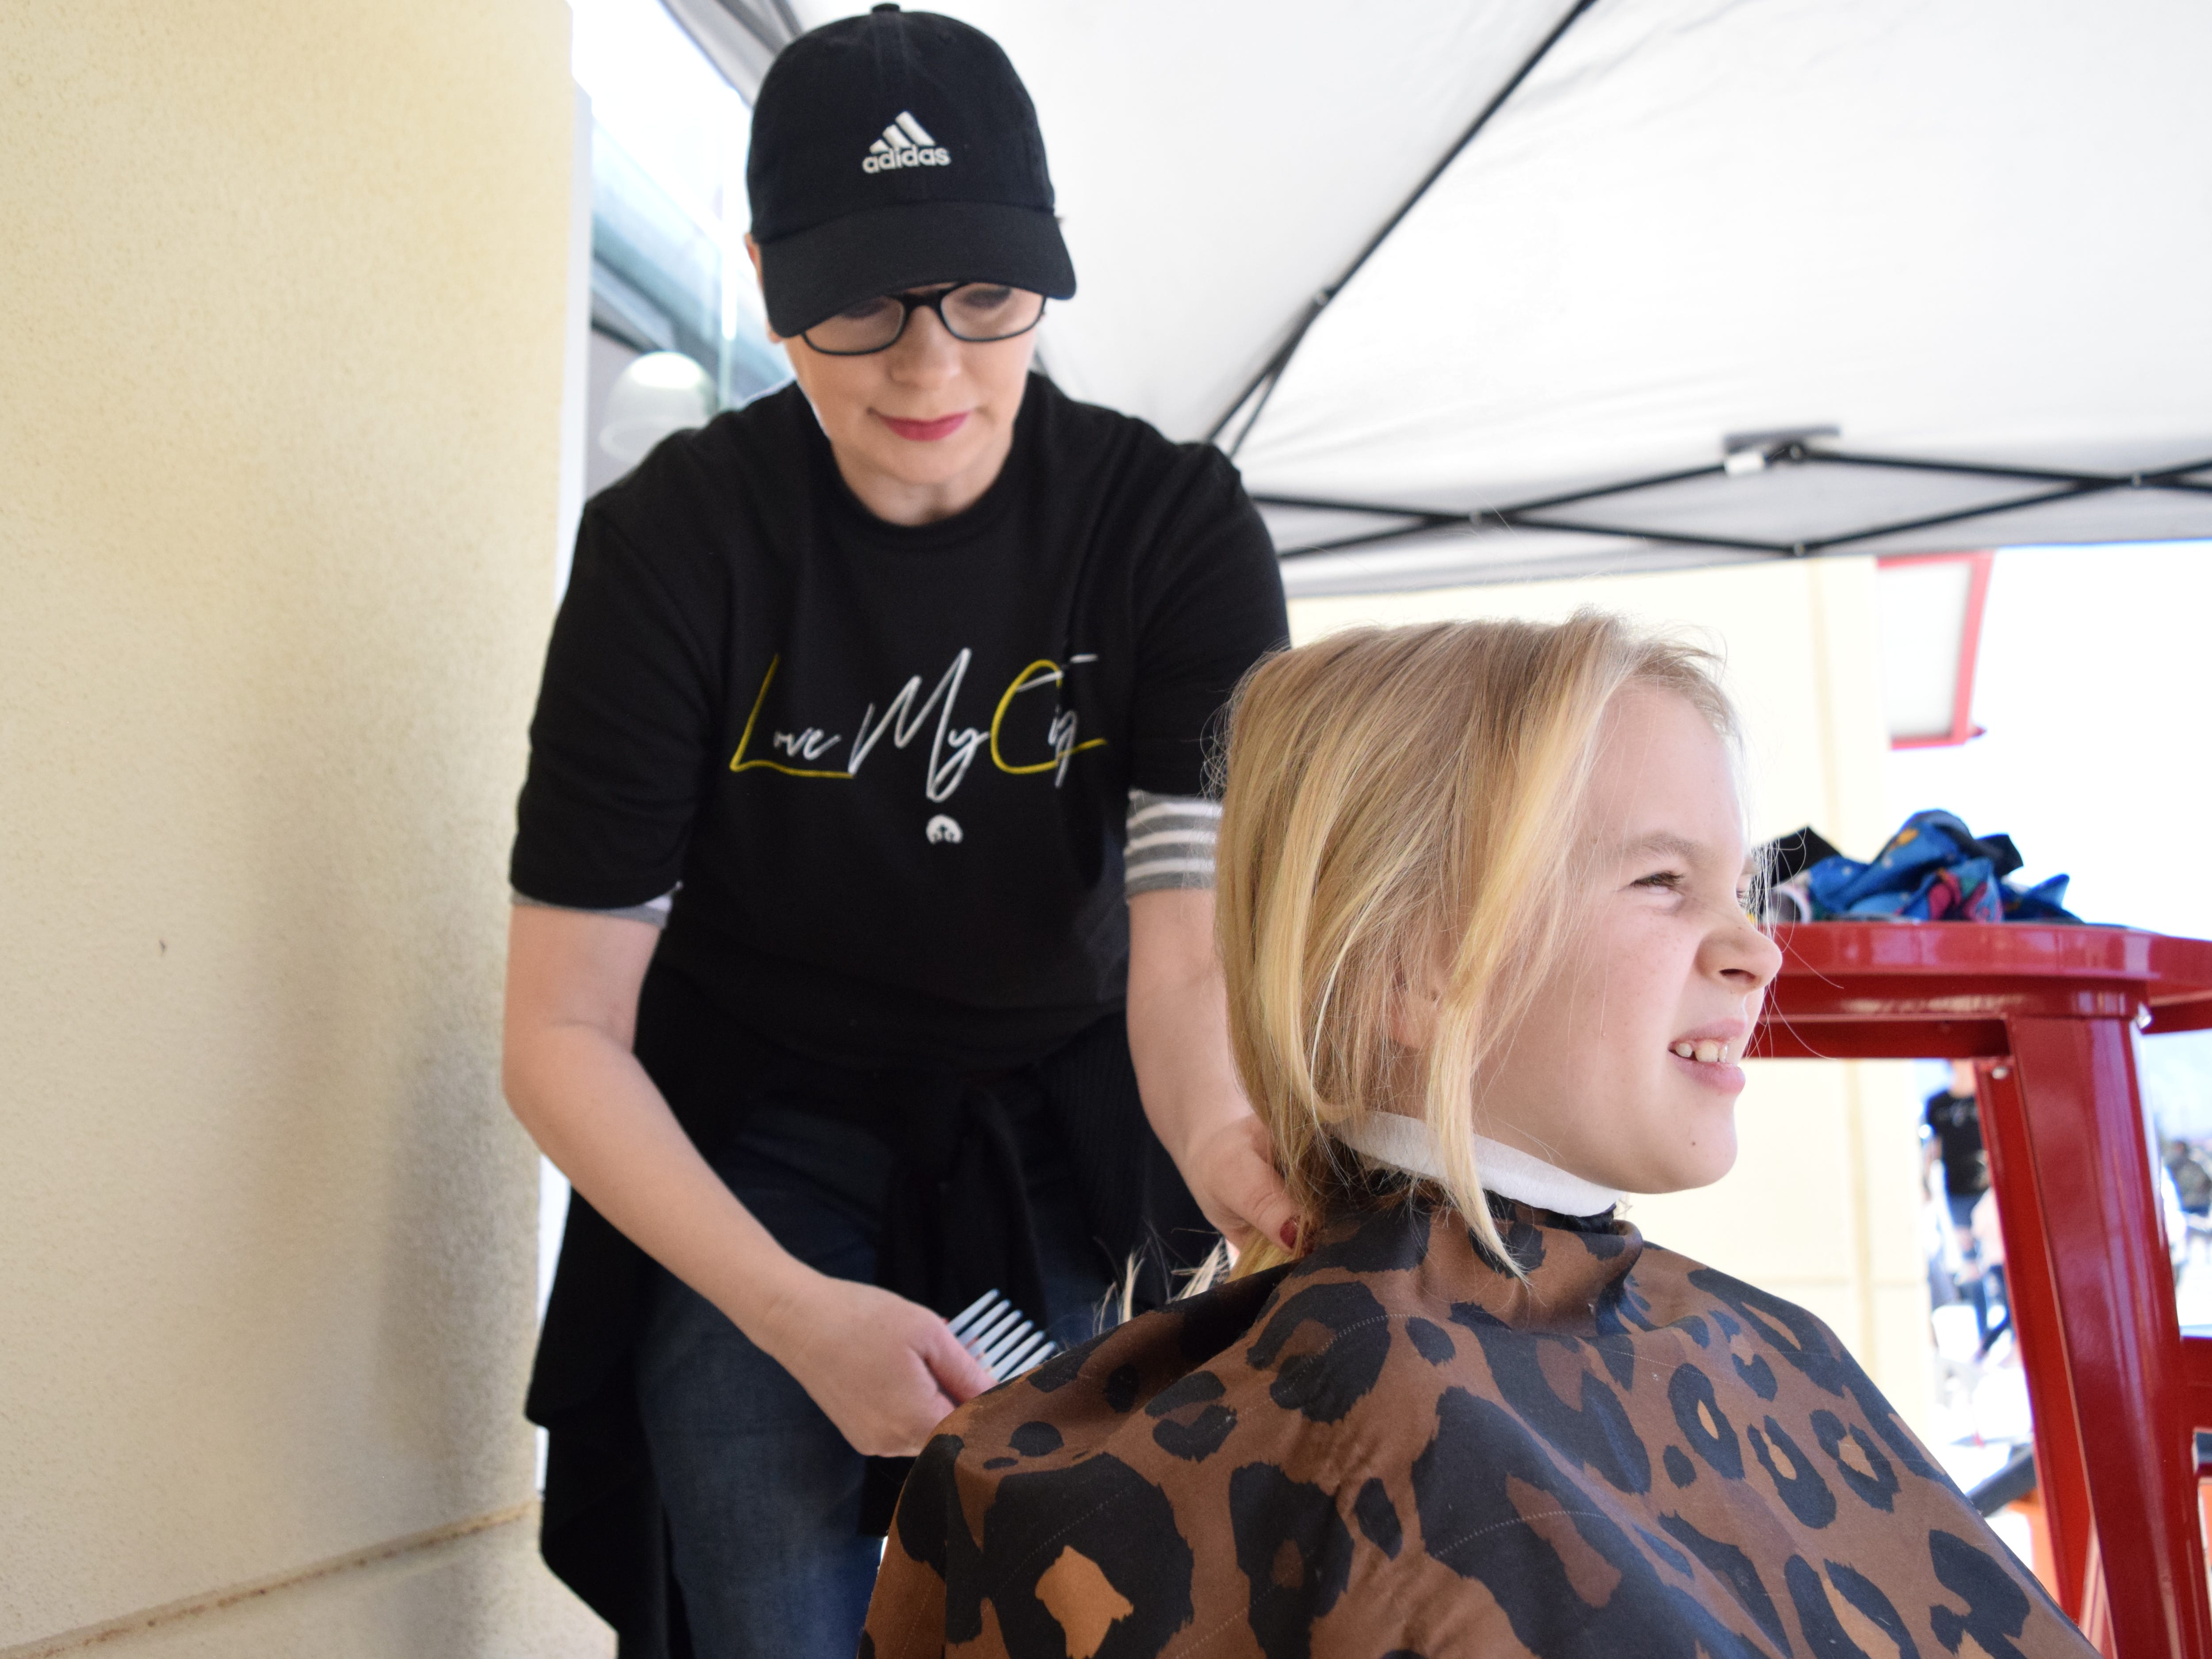 Phoenix Clabaugh, 9, gets a haircut from church member Annette Edmonds as part of Las Cruces First Assembly of God's shoe give-away event on Saturday, March 9, 2019.